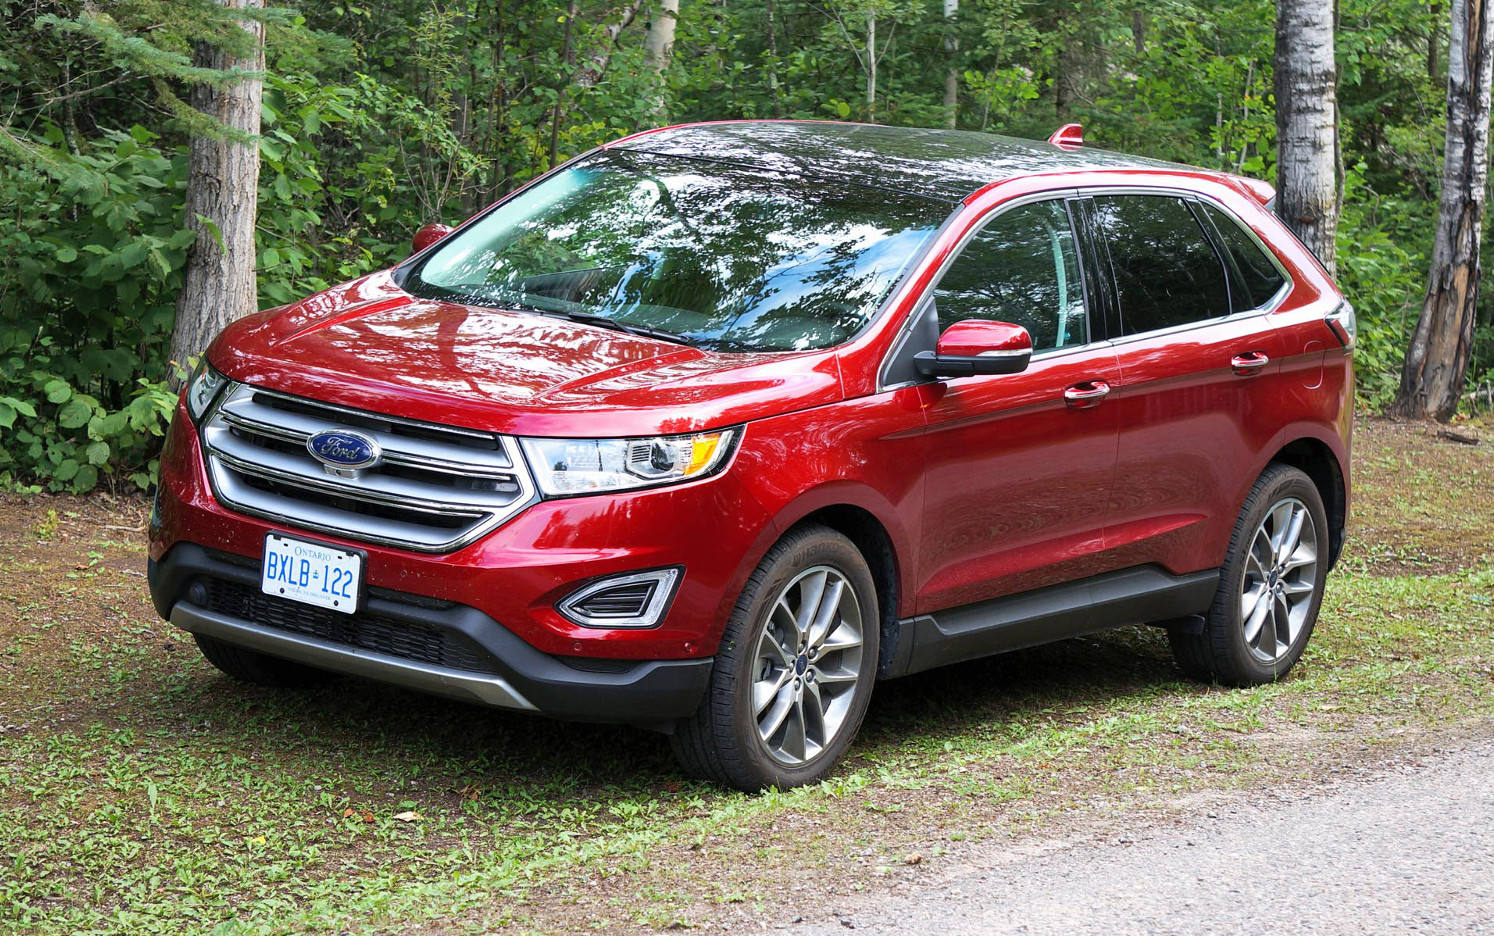 comparison ford edge sport 2015 vs suzuki grand vitara 2015 suv drive. Black Bedroom Furniture Sets. Home Design Ideas